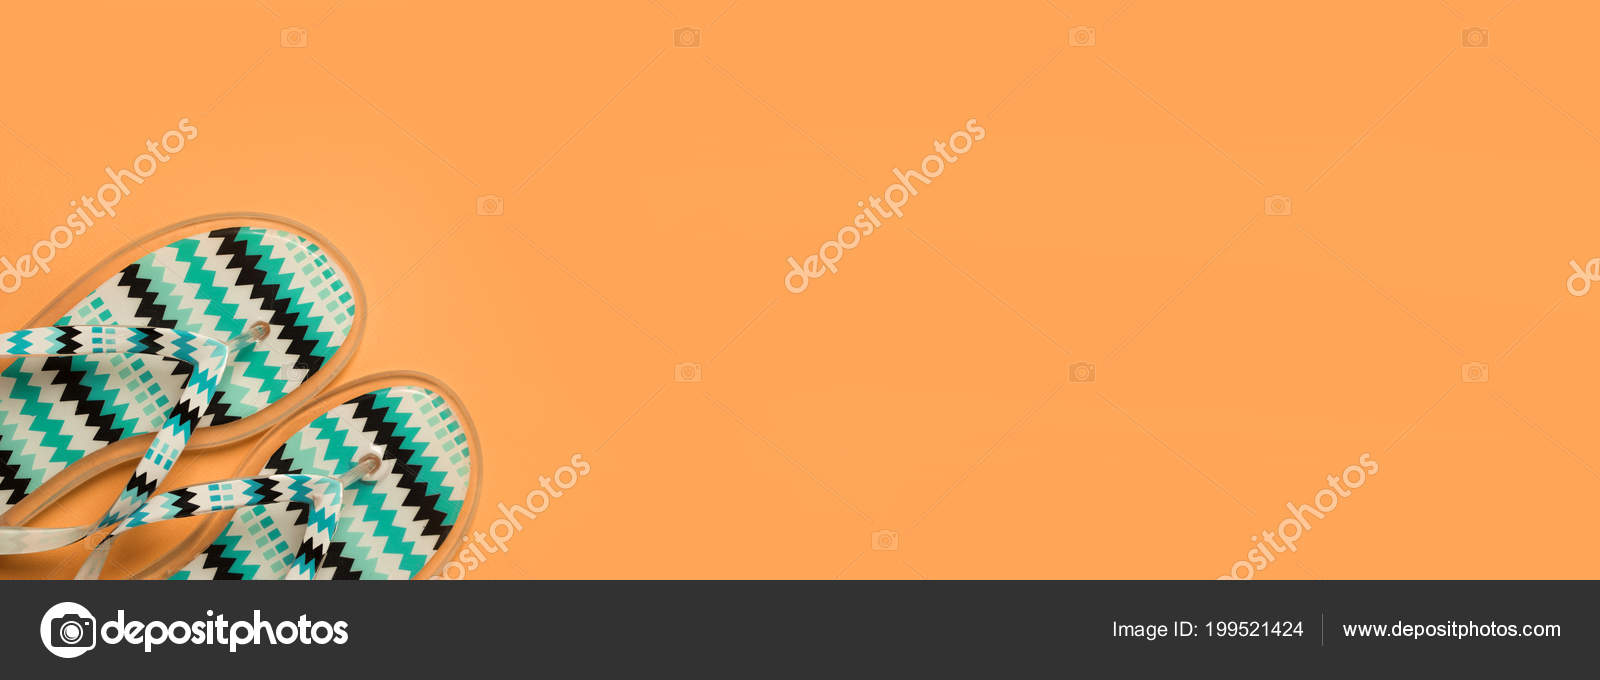 e579ac5f061e Image Beach Flip Flops Yellow Background Copy Space Summer Concept — Stock  Photo